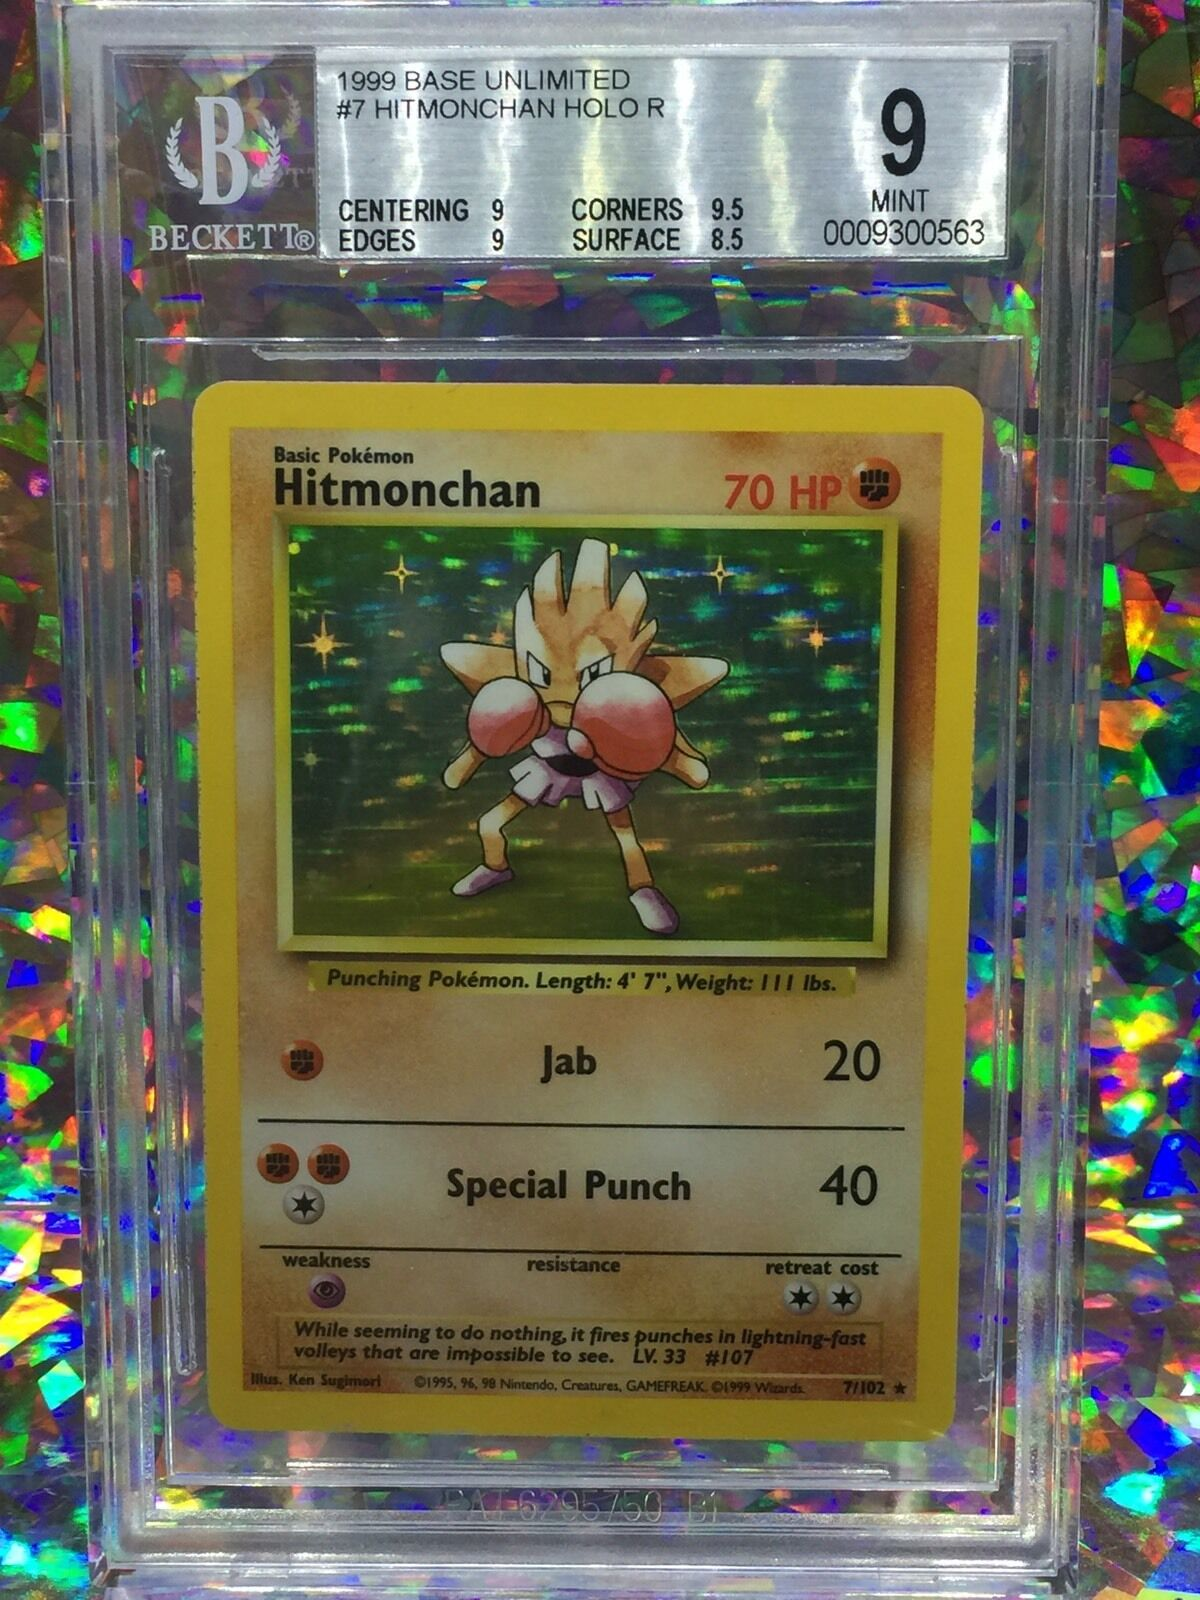 1999 Pokemon Base Hitmonchan Holo Unlimited Card 07 102 Rare BGS 9 Mint